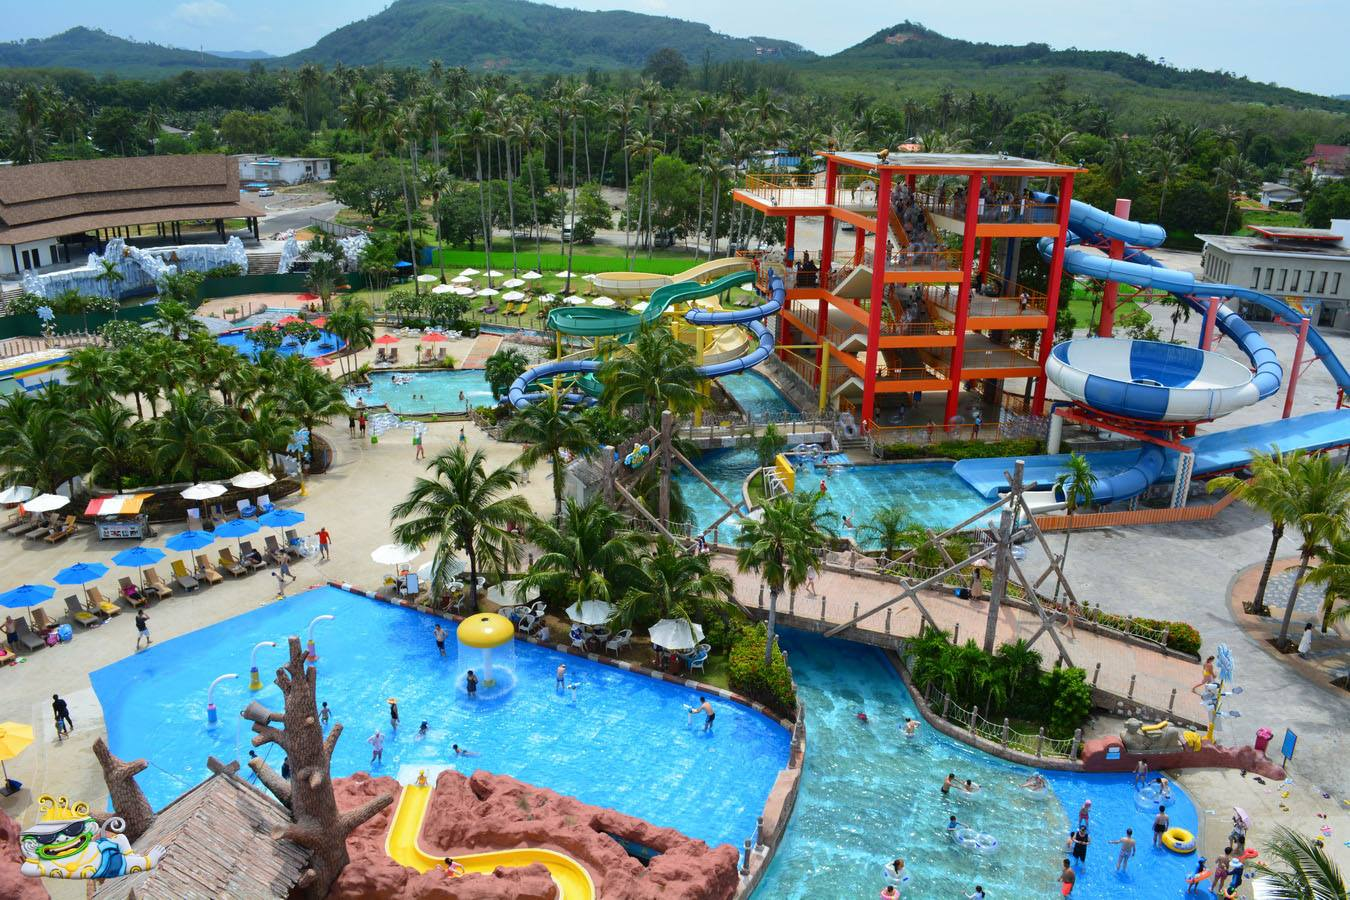 Another huge water park just opened to public-made by our associate in China